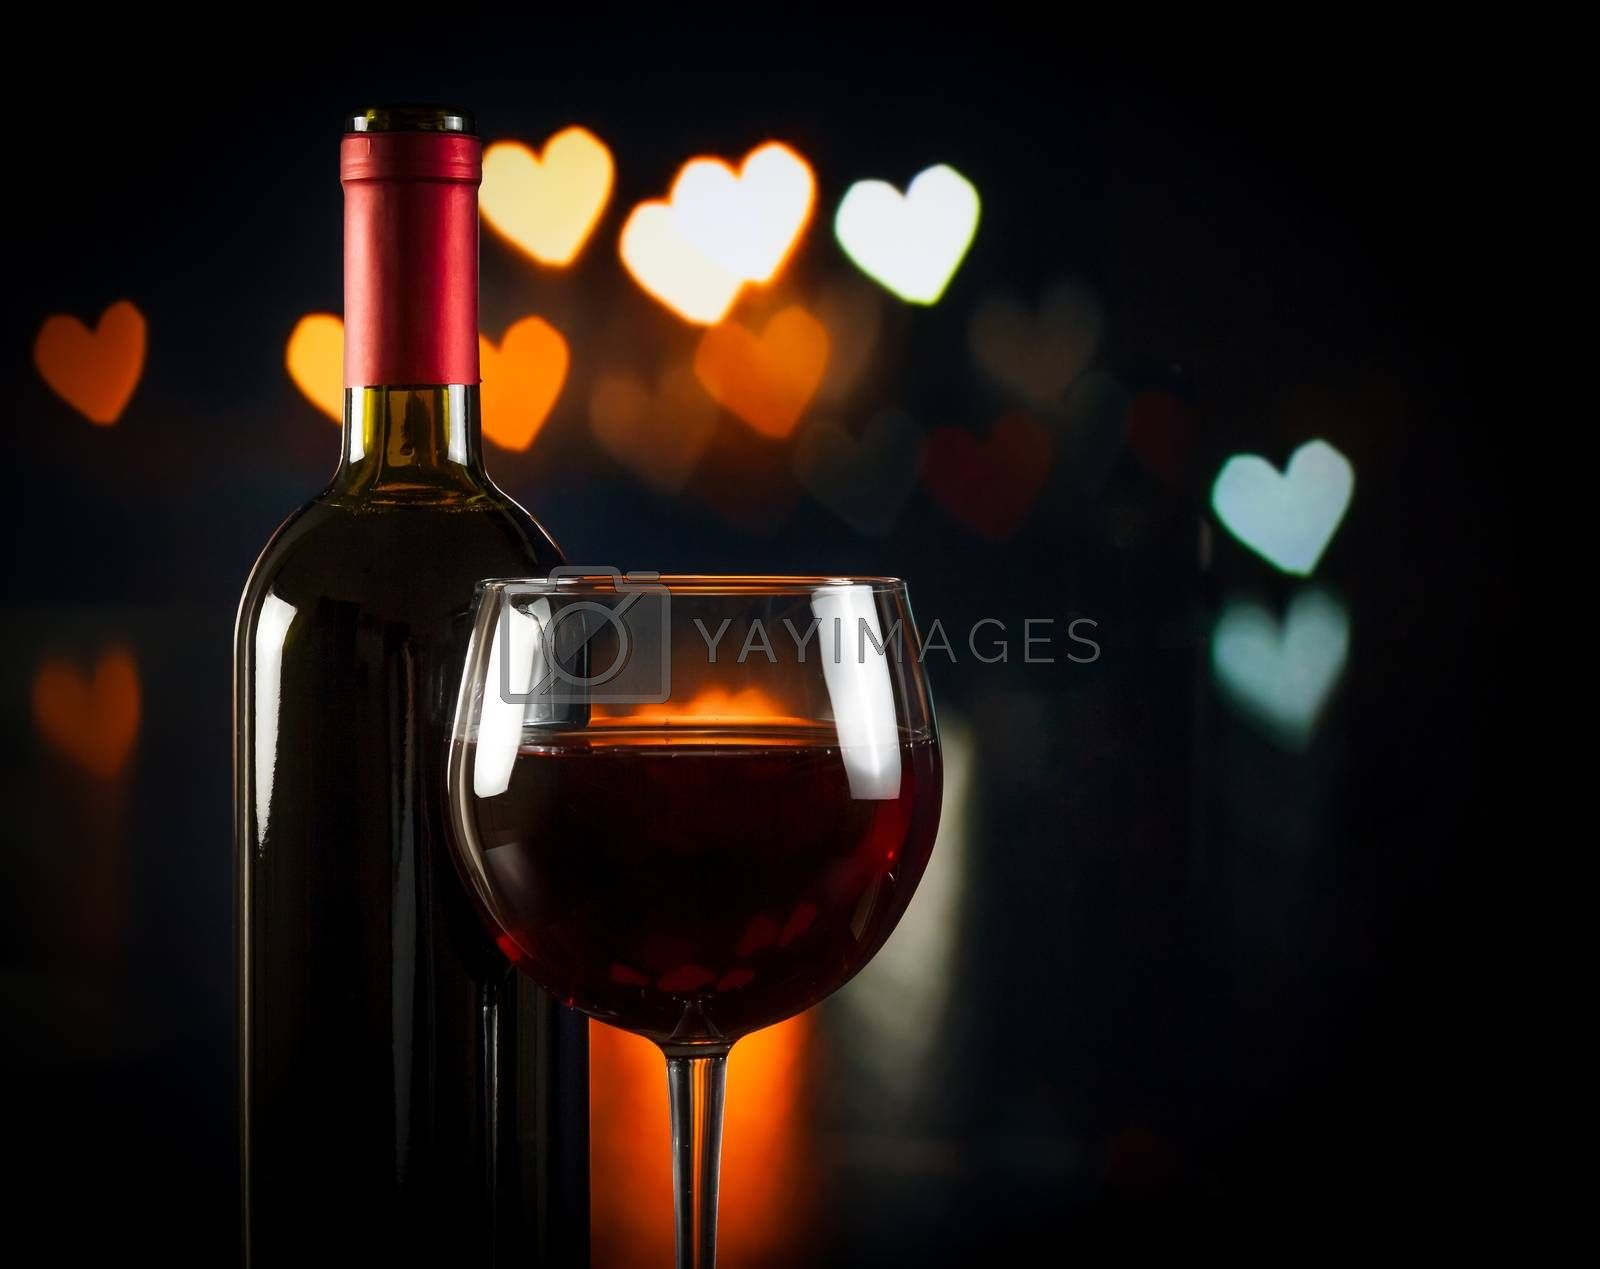 wine glass near bottle, concept of valentine's day by donfiore